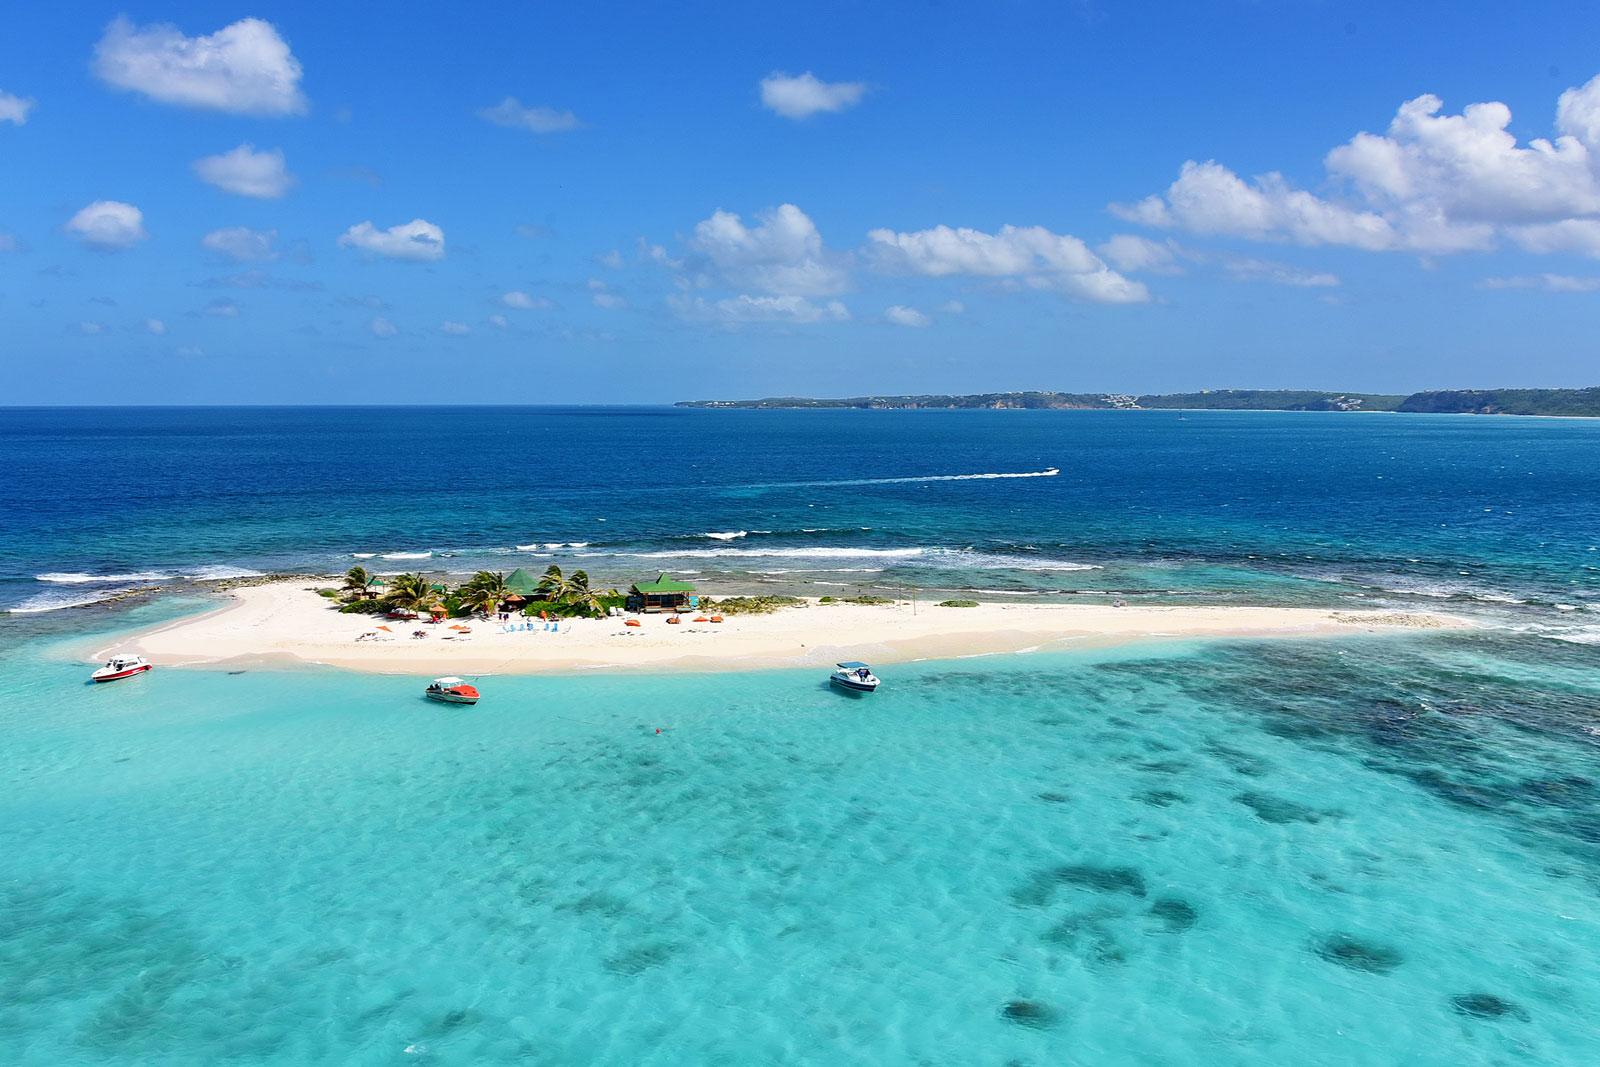 Sandy Island near Anguilla, British West Indies a great place for picnics